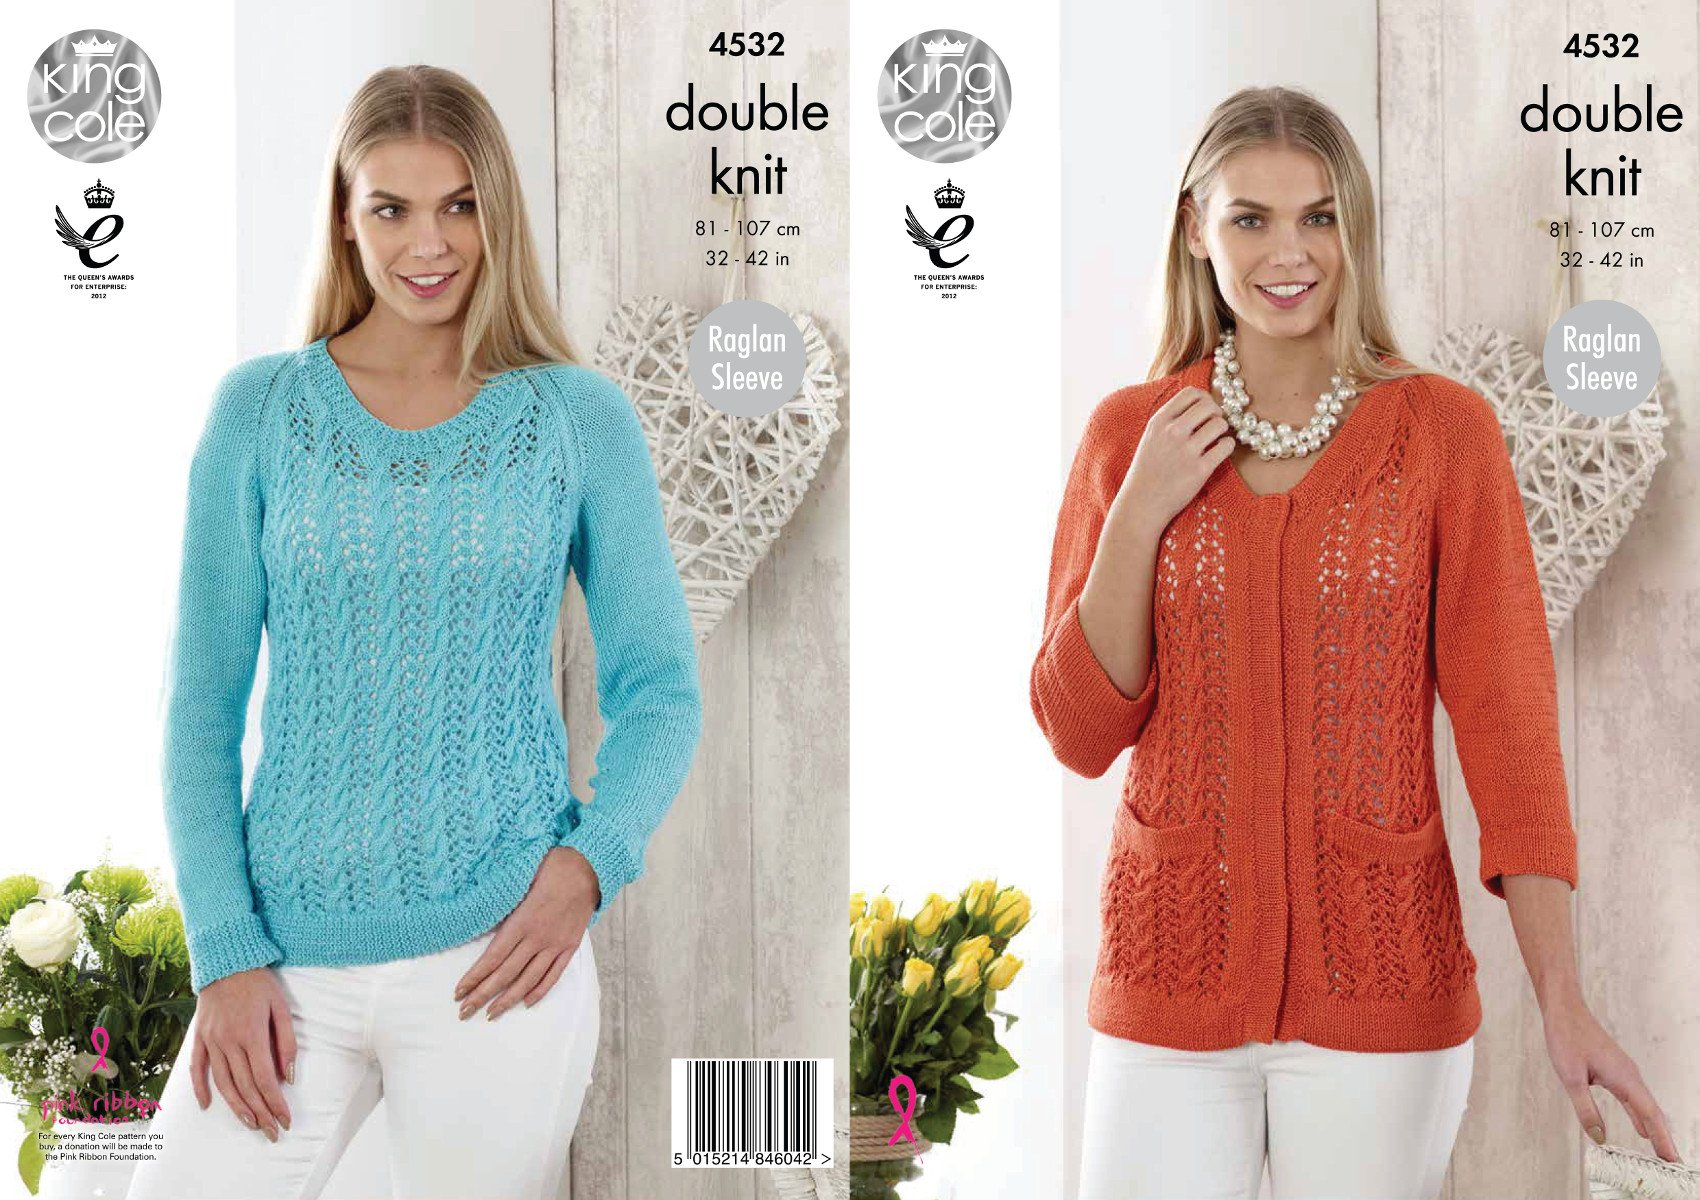 87e27ef5d3e1 Cheap Lace Edging Knitting Pattern